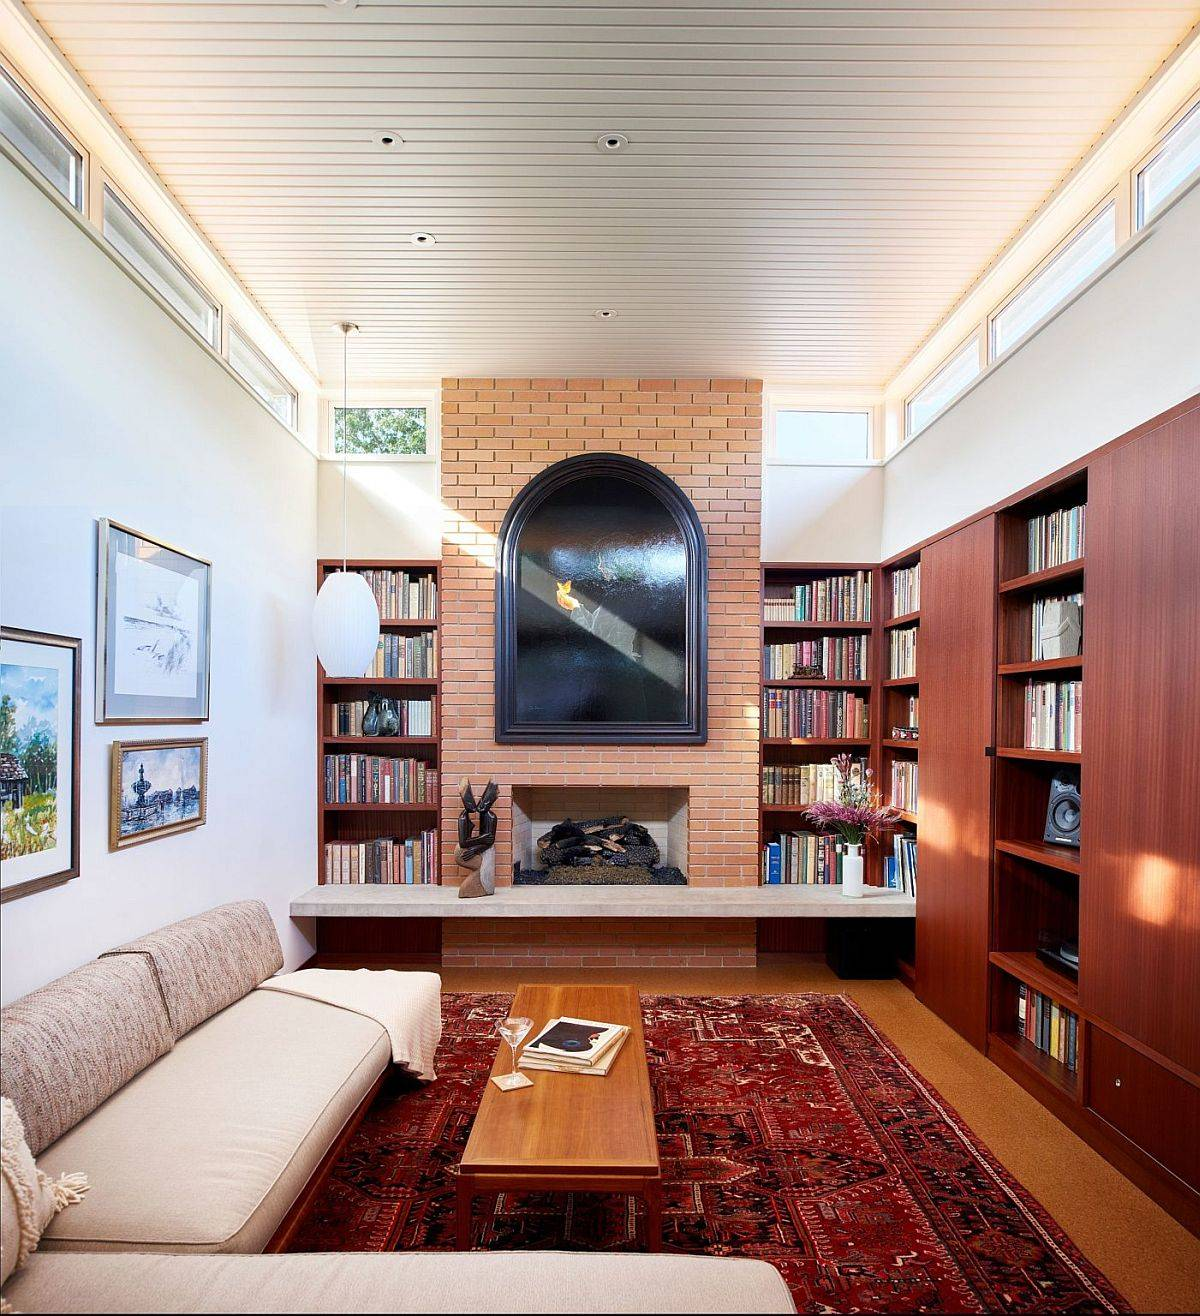 Family-room-with-brick-walls-large-bookshelves-and-clerestory-windows-that-usher-in-natural-light-19344